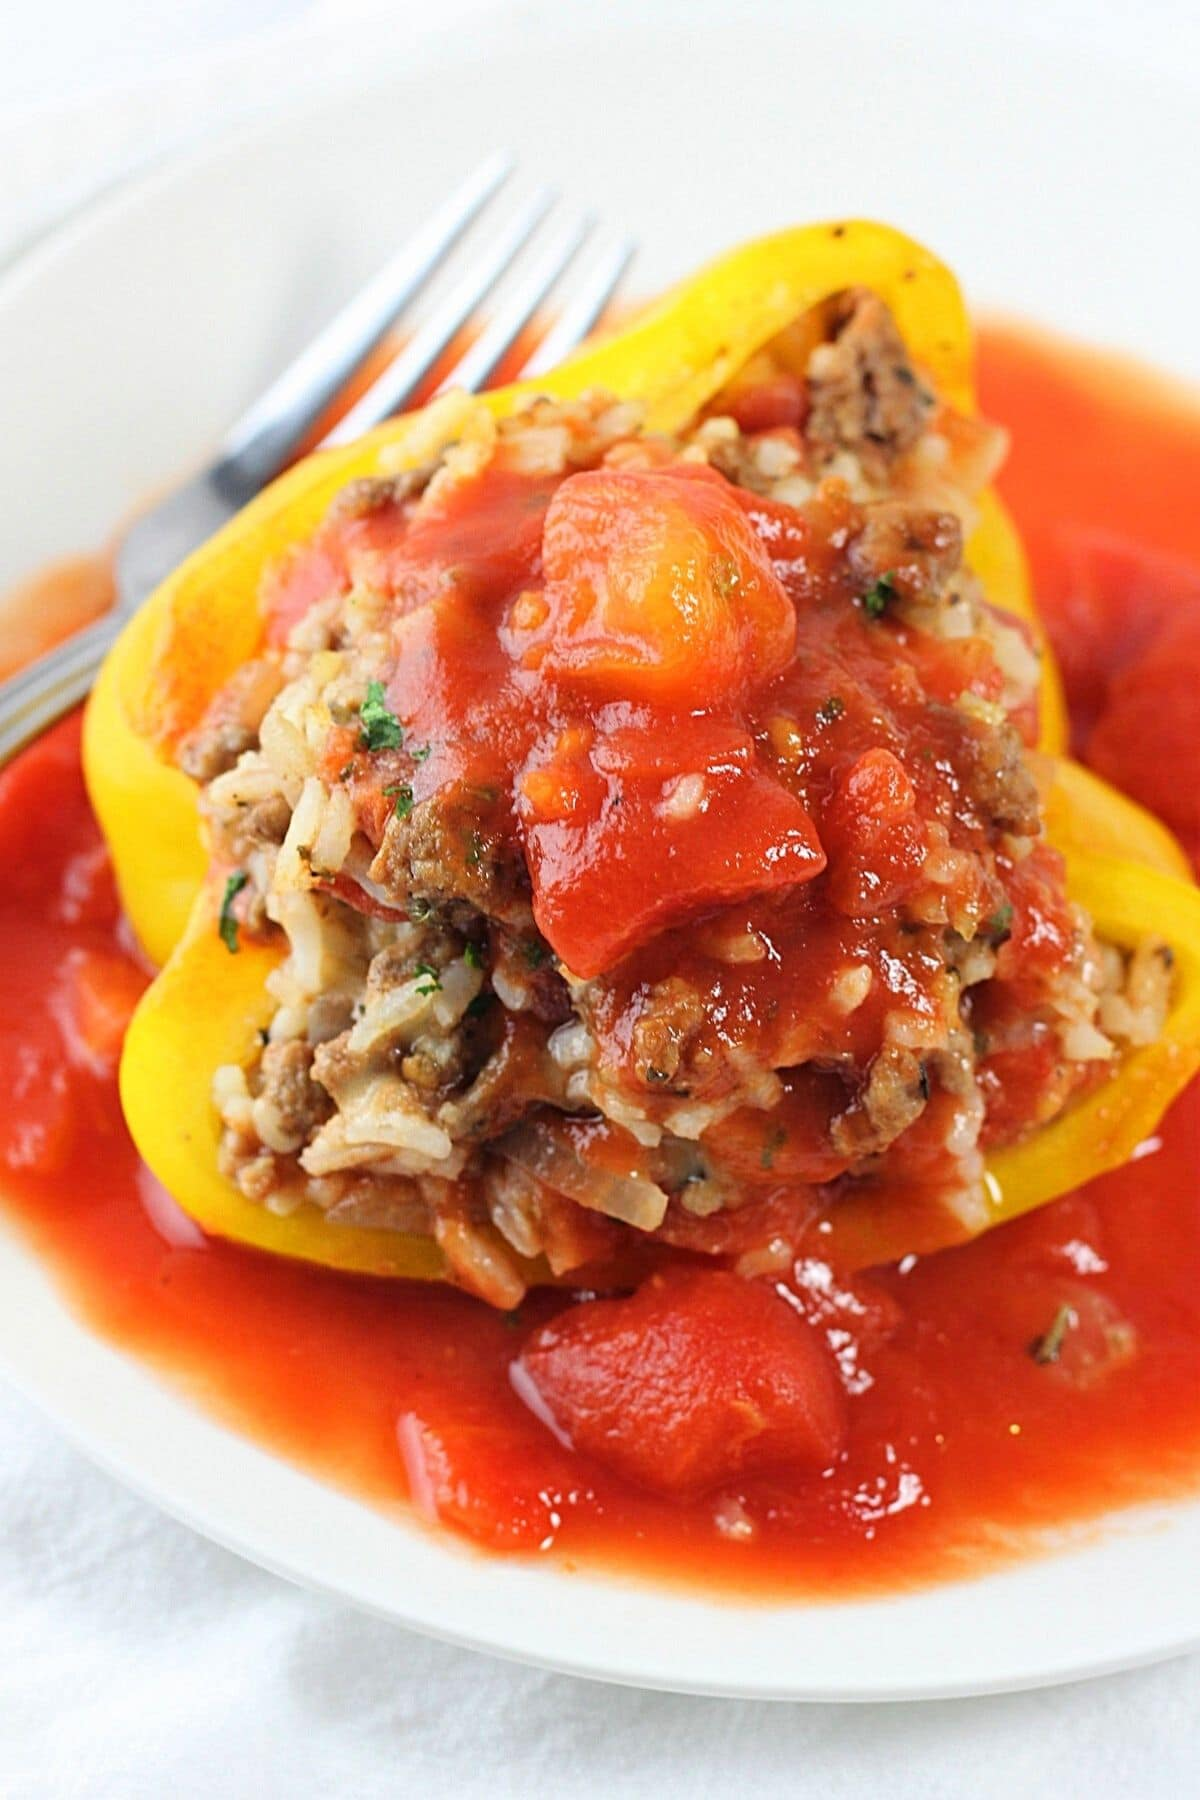 saucy stuffed bell pepper on a white plate with a fork with extra sauce on the plate and on top of the pepper